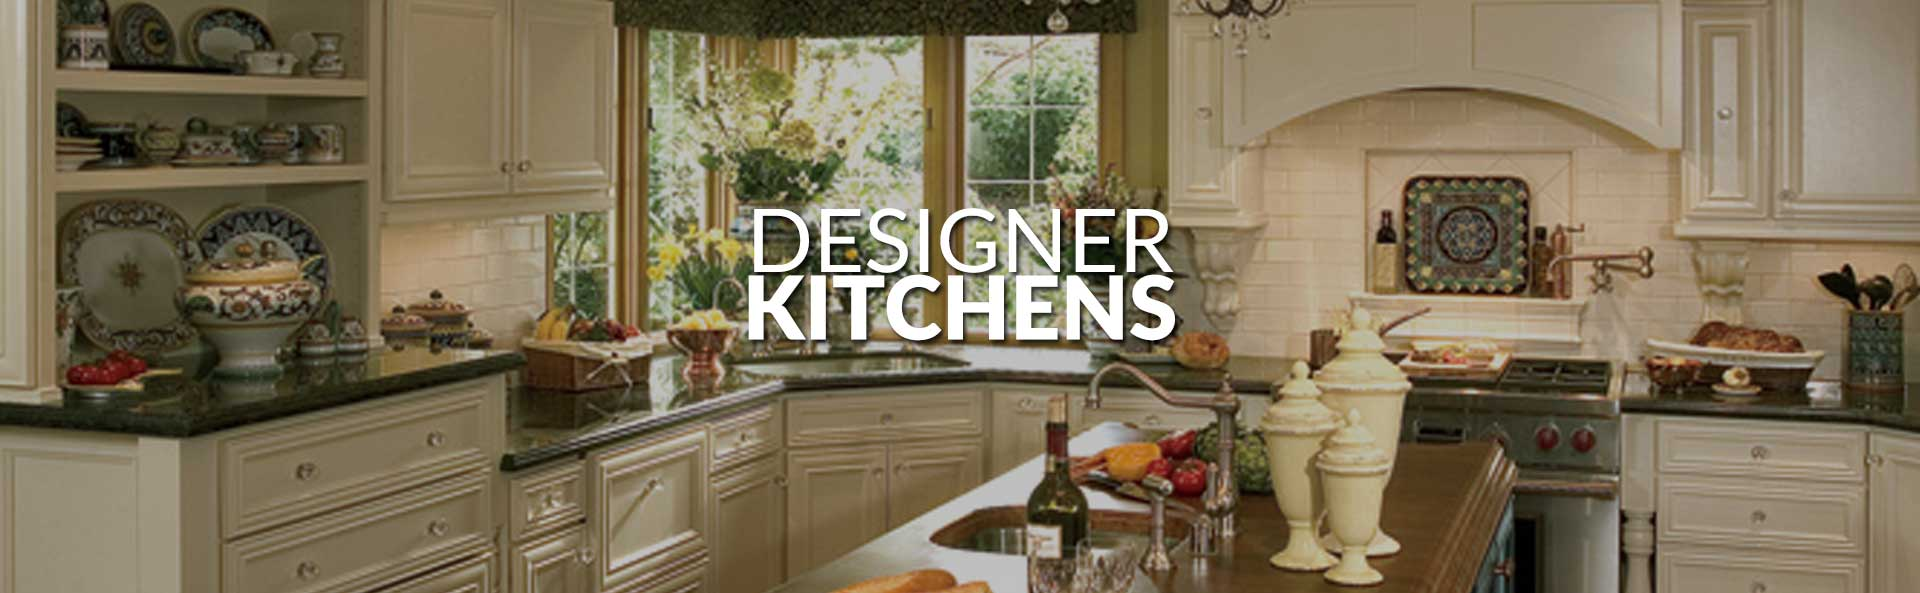 Organic Home - JKitchenCabinets2You on modern design, closet design, exterior design, office design, apartment design, pantry design, basement design, bathroom design, garage design, staircase design, master bath design, bedroom design, backyard design, tile design, shower design, den design, fireplace design, room design, hall design, interior design,